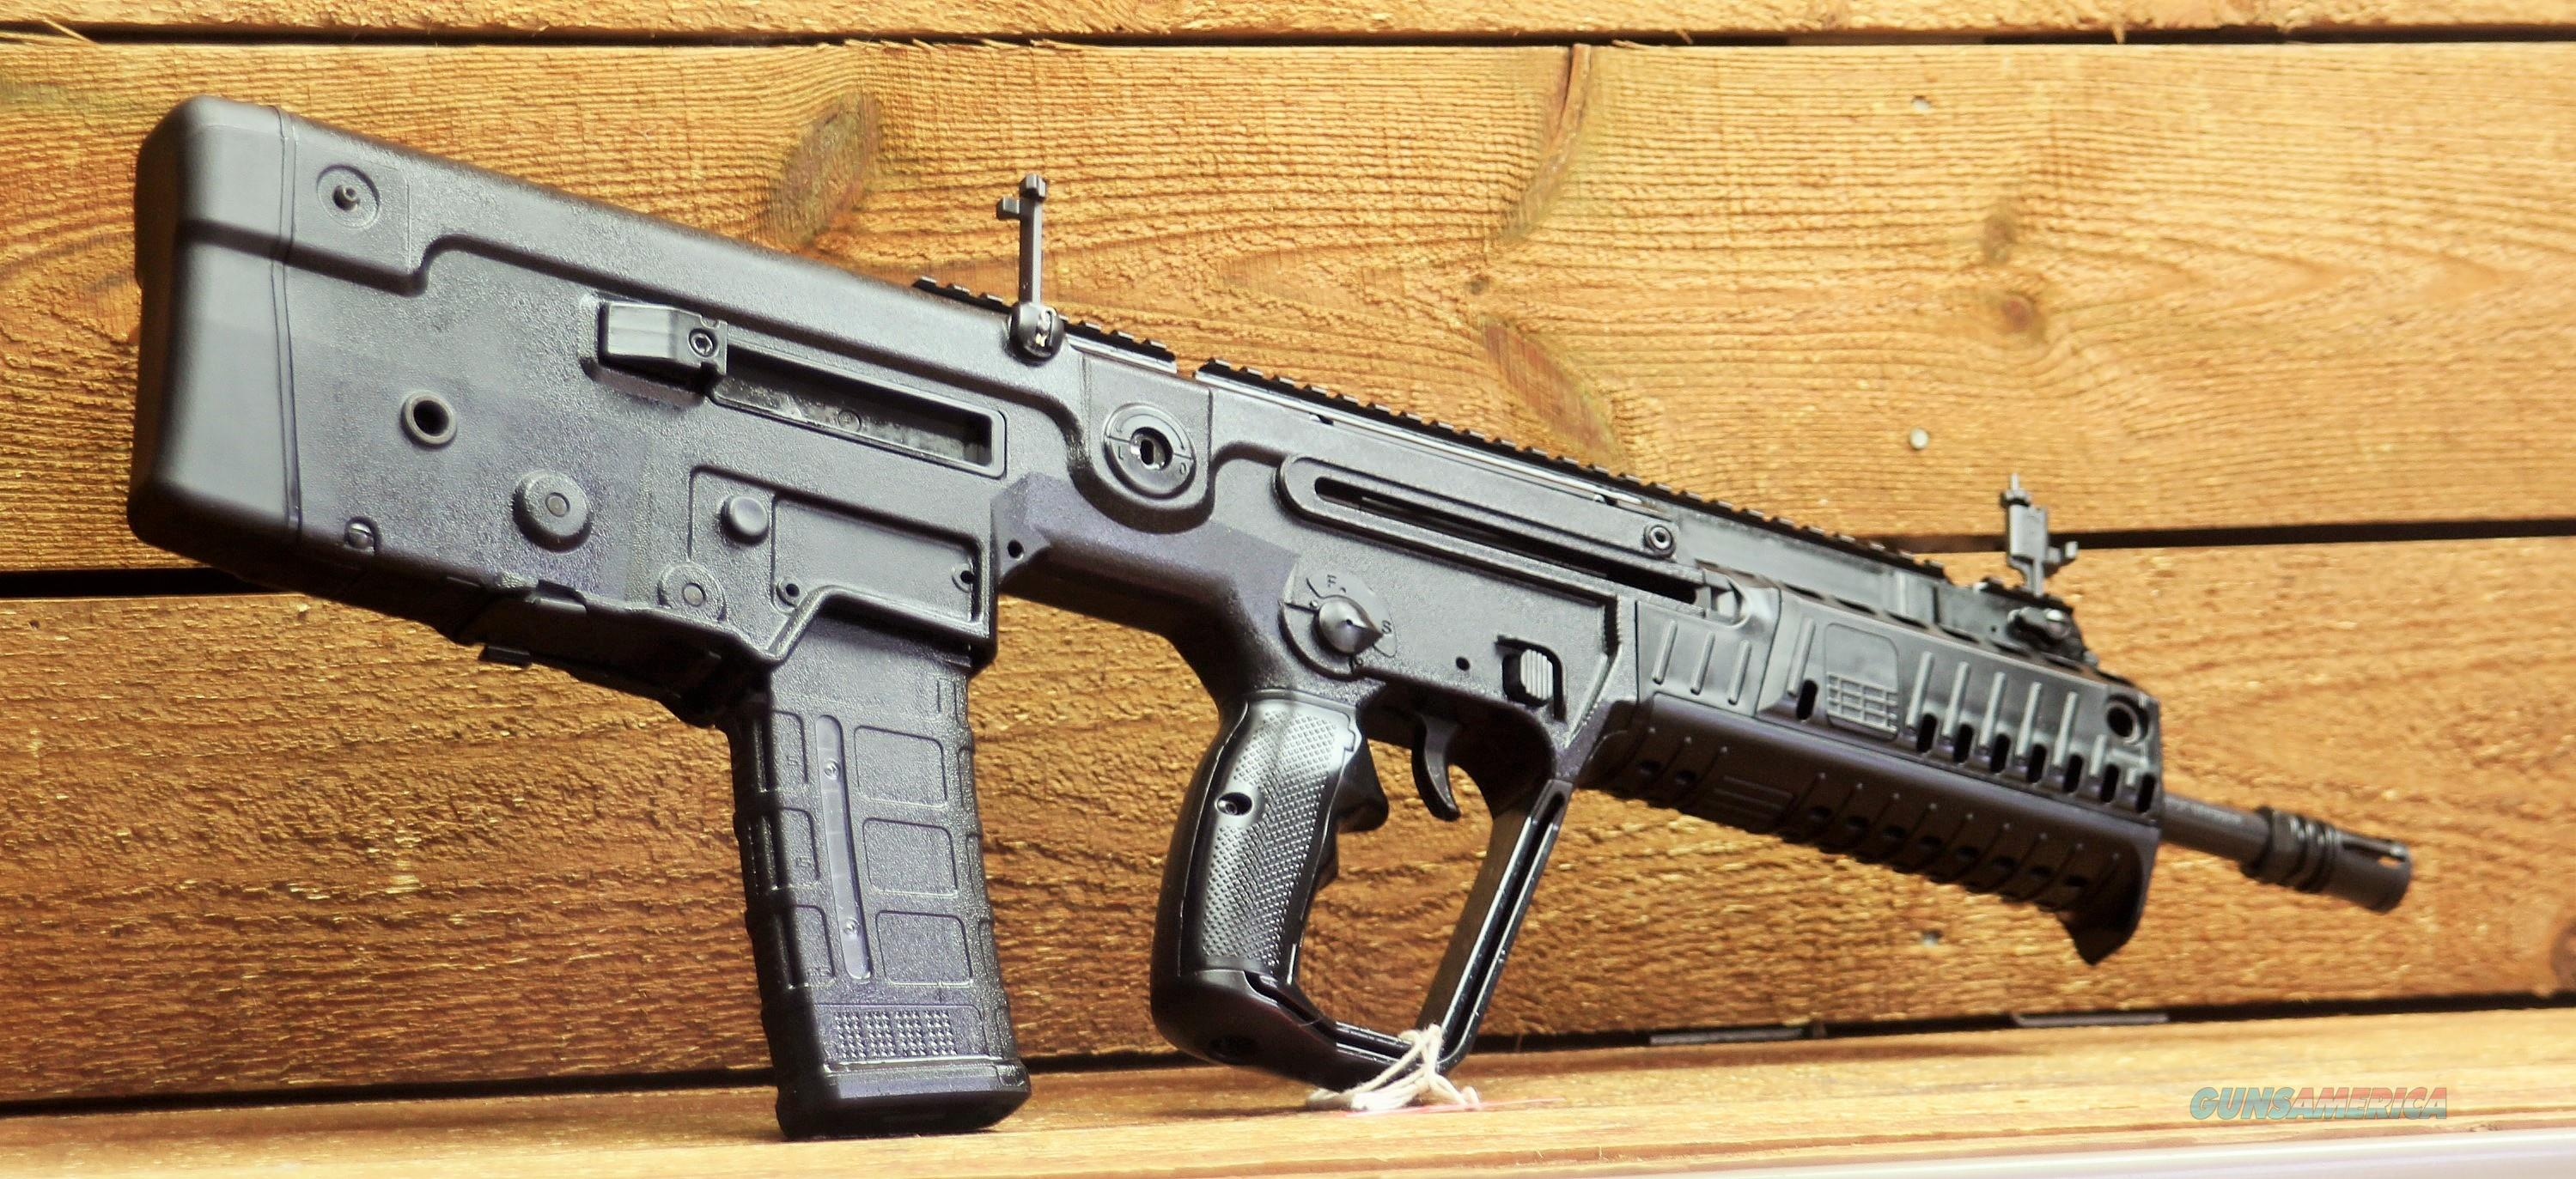 1. Easy Pay $105 LAYAWAY Israel Weapon Industries x 95 IWI TAVOR X95 Bullpup 5.56mm NATO  XB16 bull-pup Flattop  5.56mm NATO Tavor SAR bullpup  picatinny rails pistol grip   Guns > Rifles > IWI Rifles